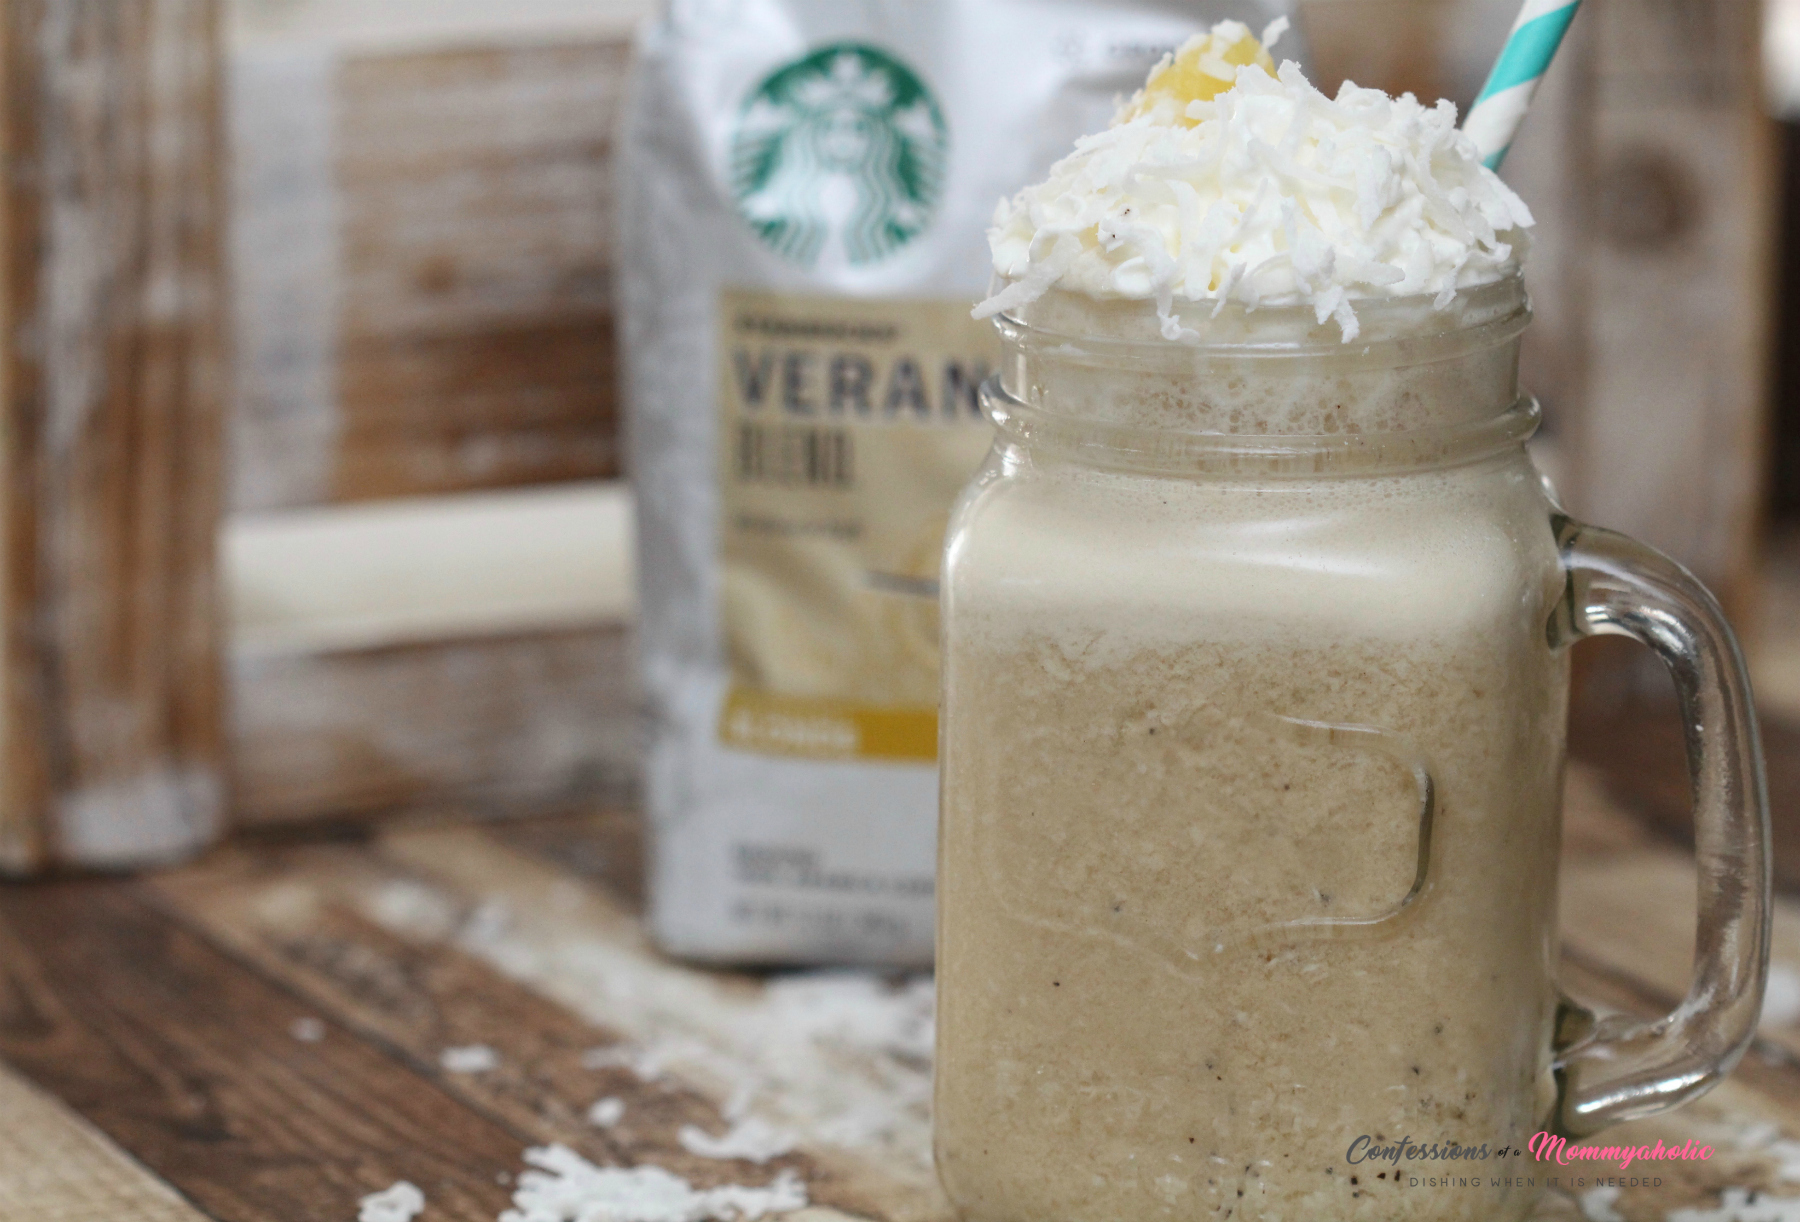 Pina Colada Iced Coffee Starbucks Veranda Blend 2